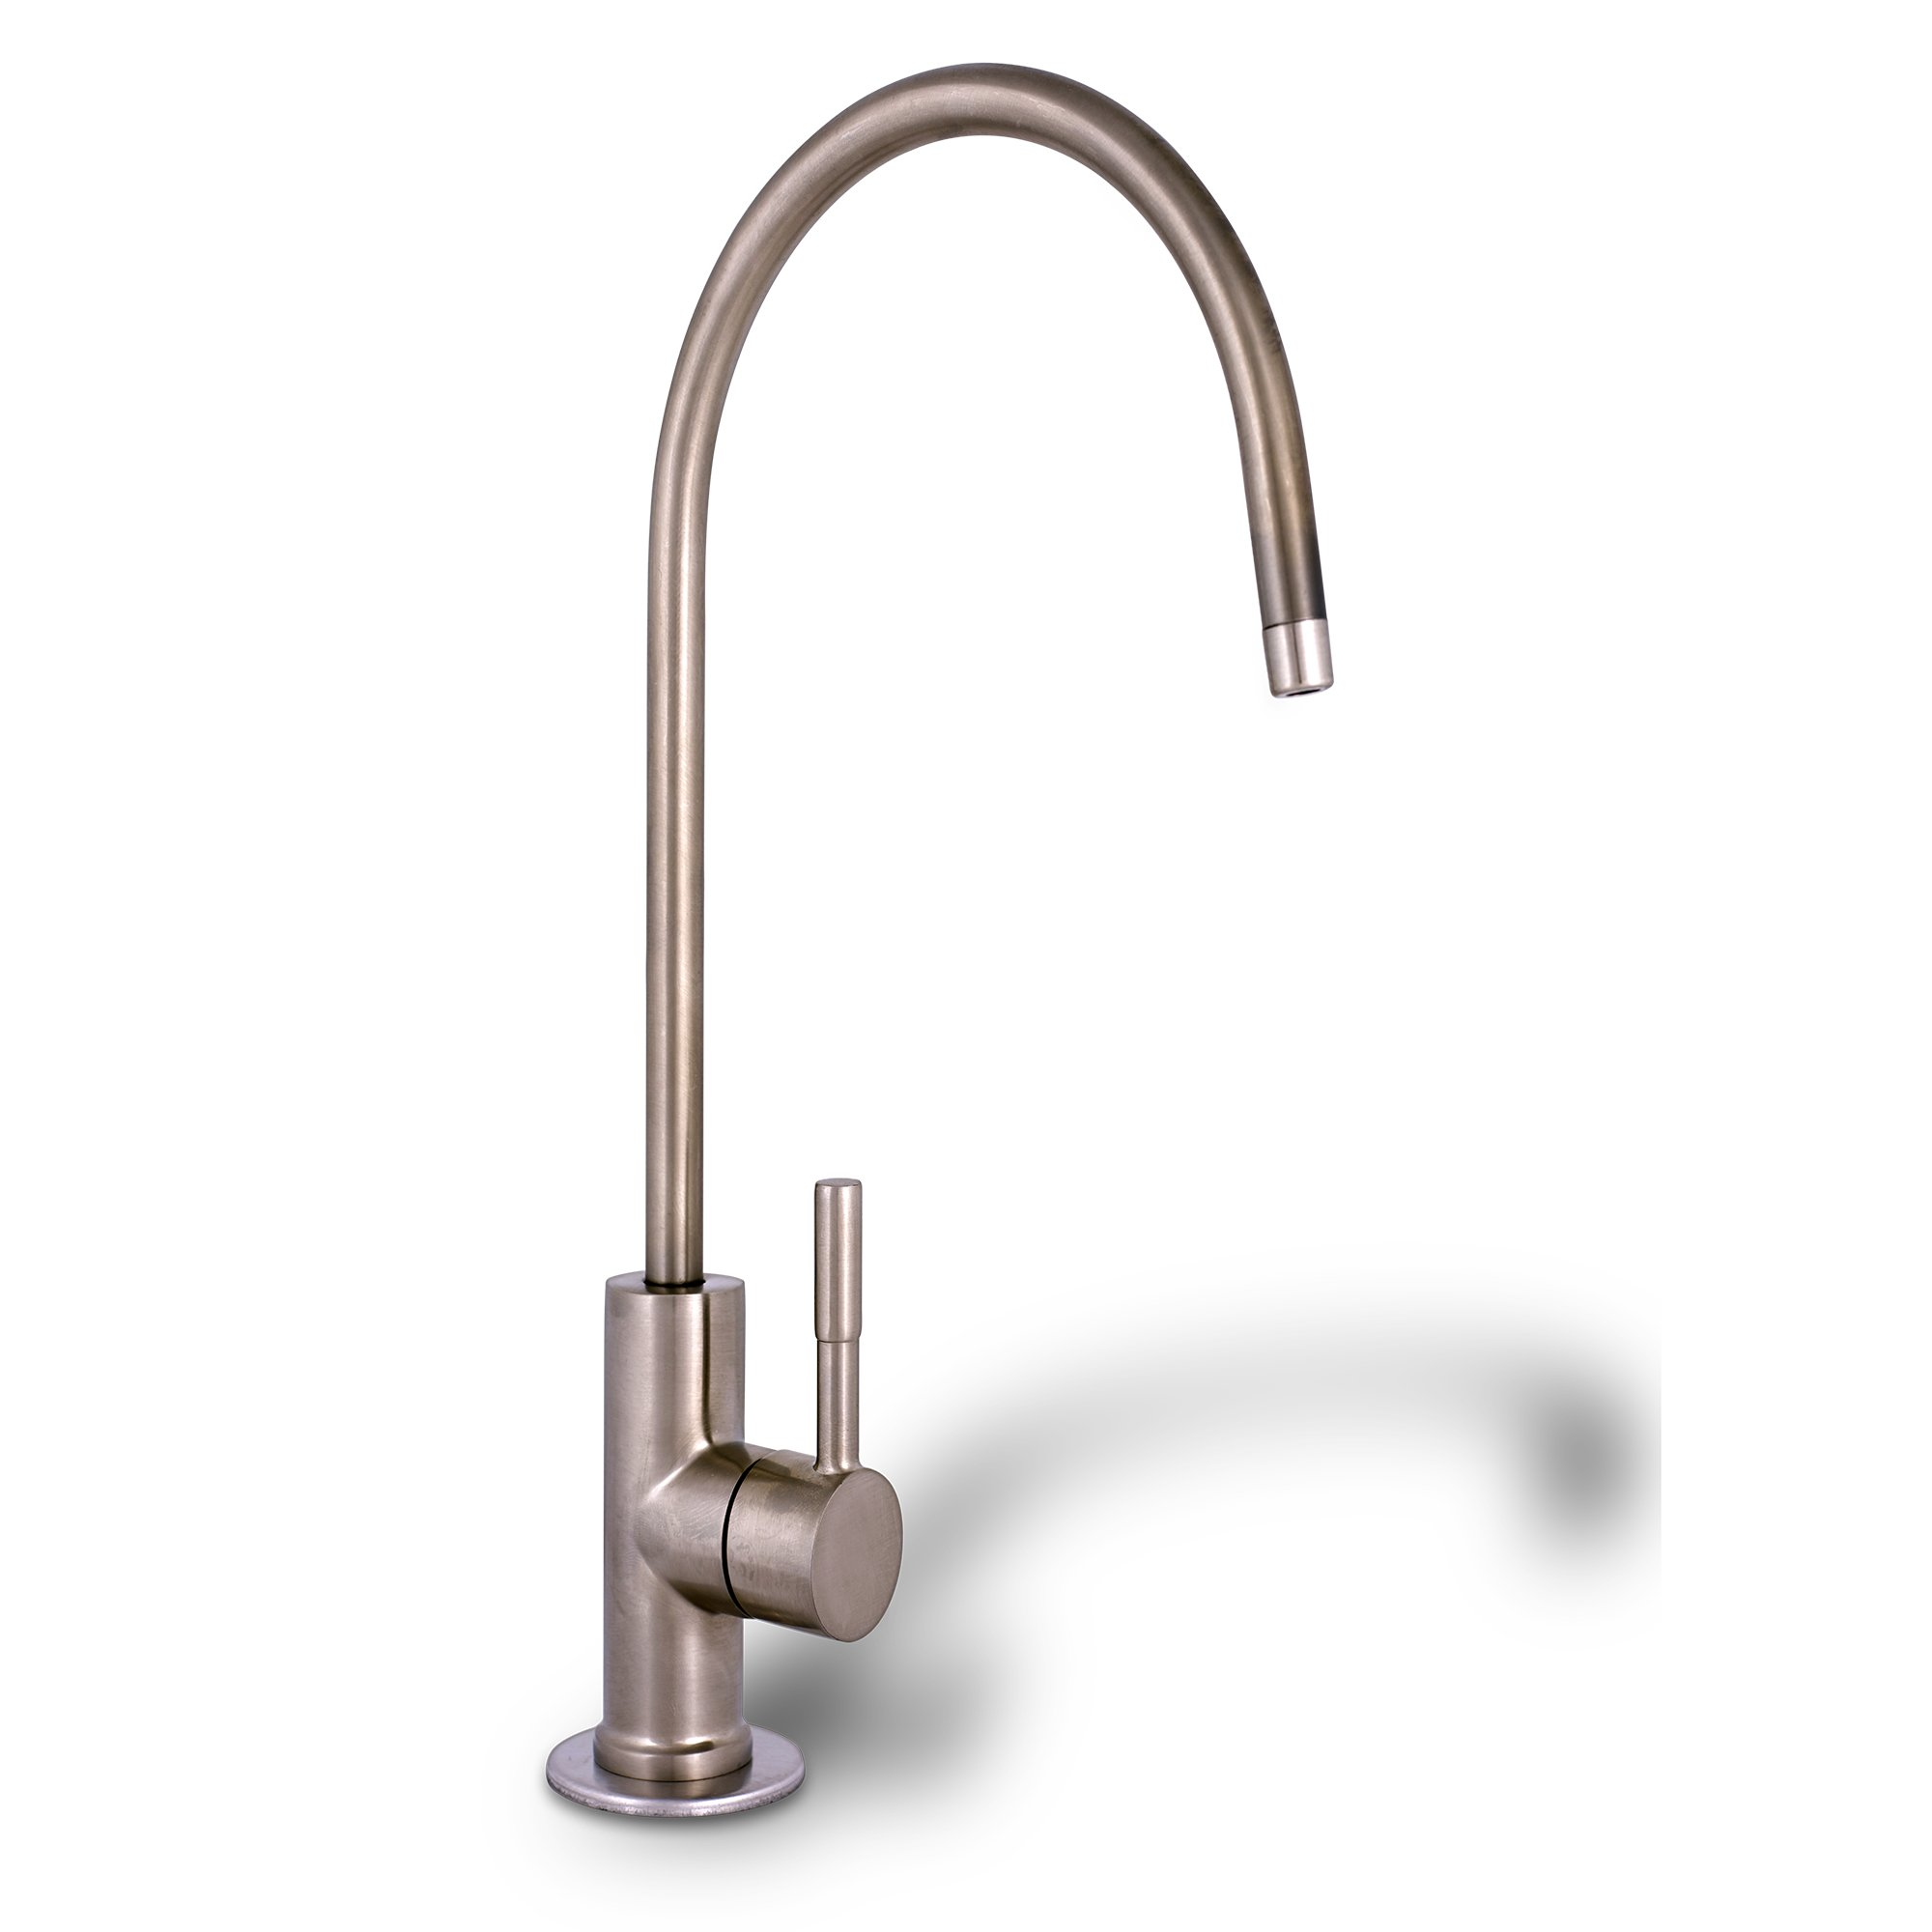 Ronaqua Water Filter Purifier Faucet European Style Brushed Nickel